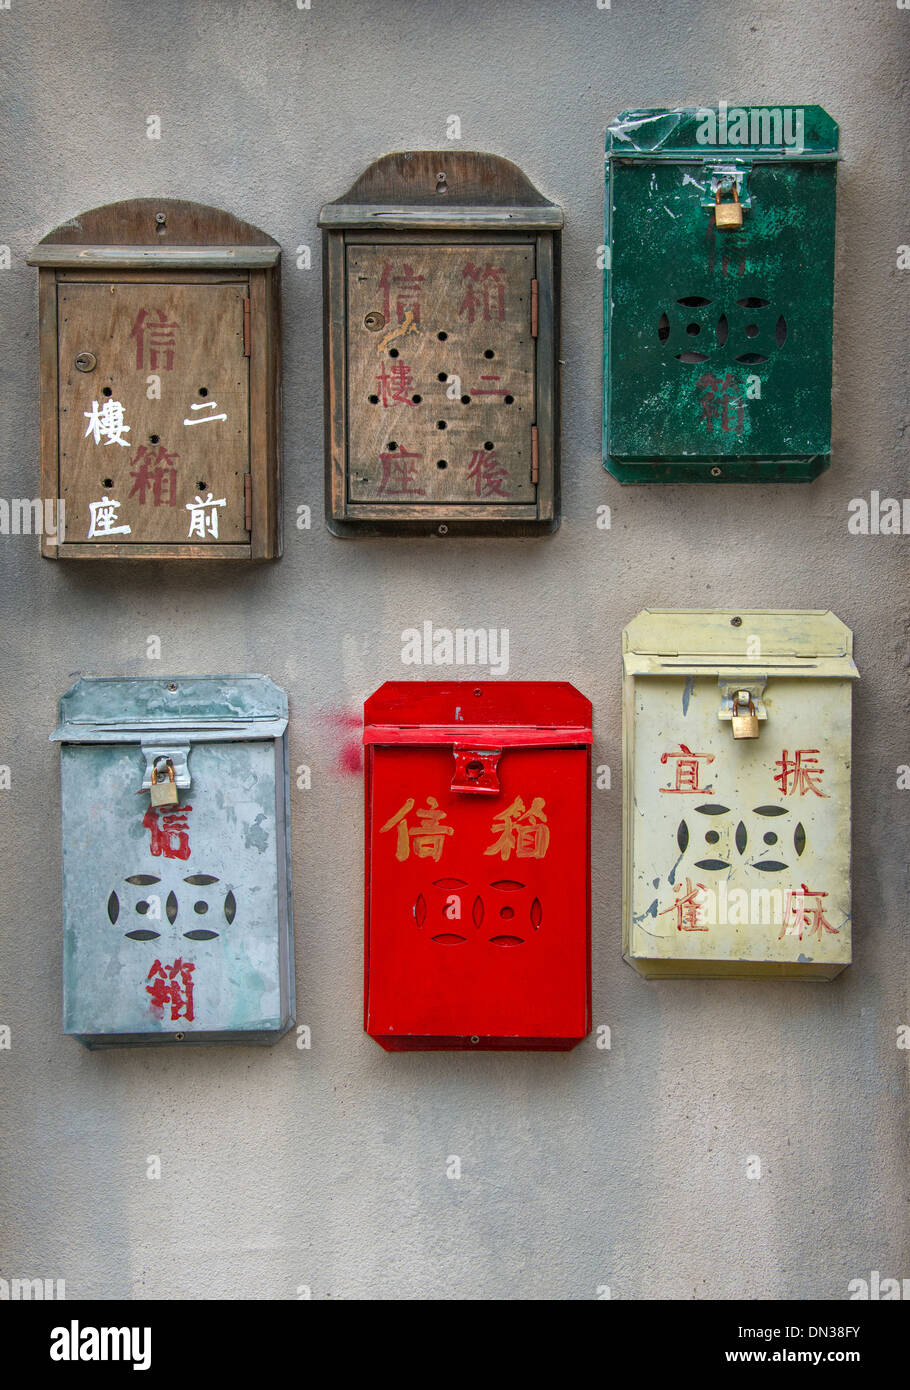 Antique Letter Boxes, Hong Kong - Stock Image